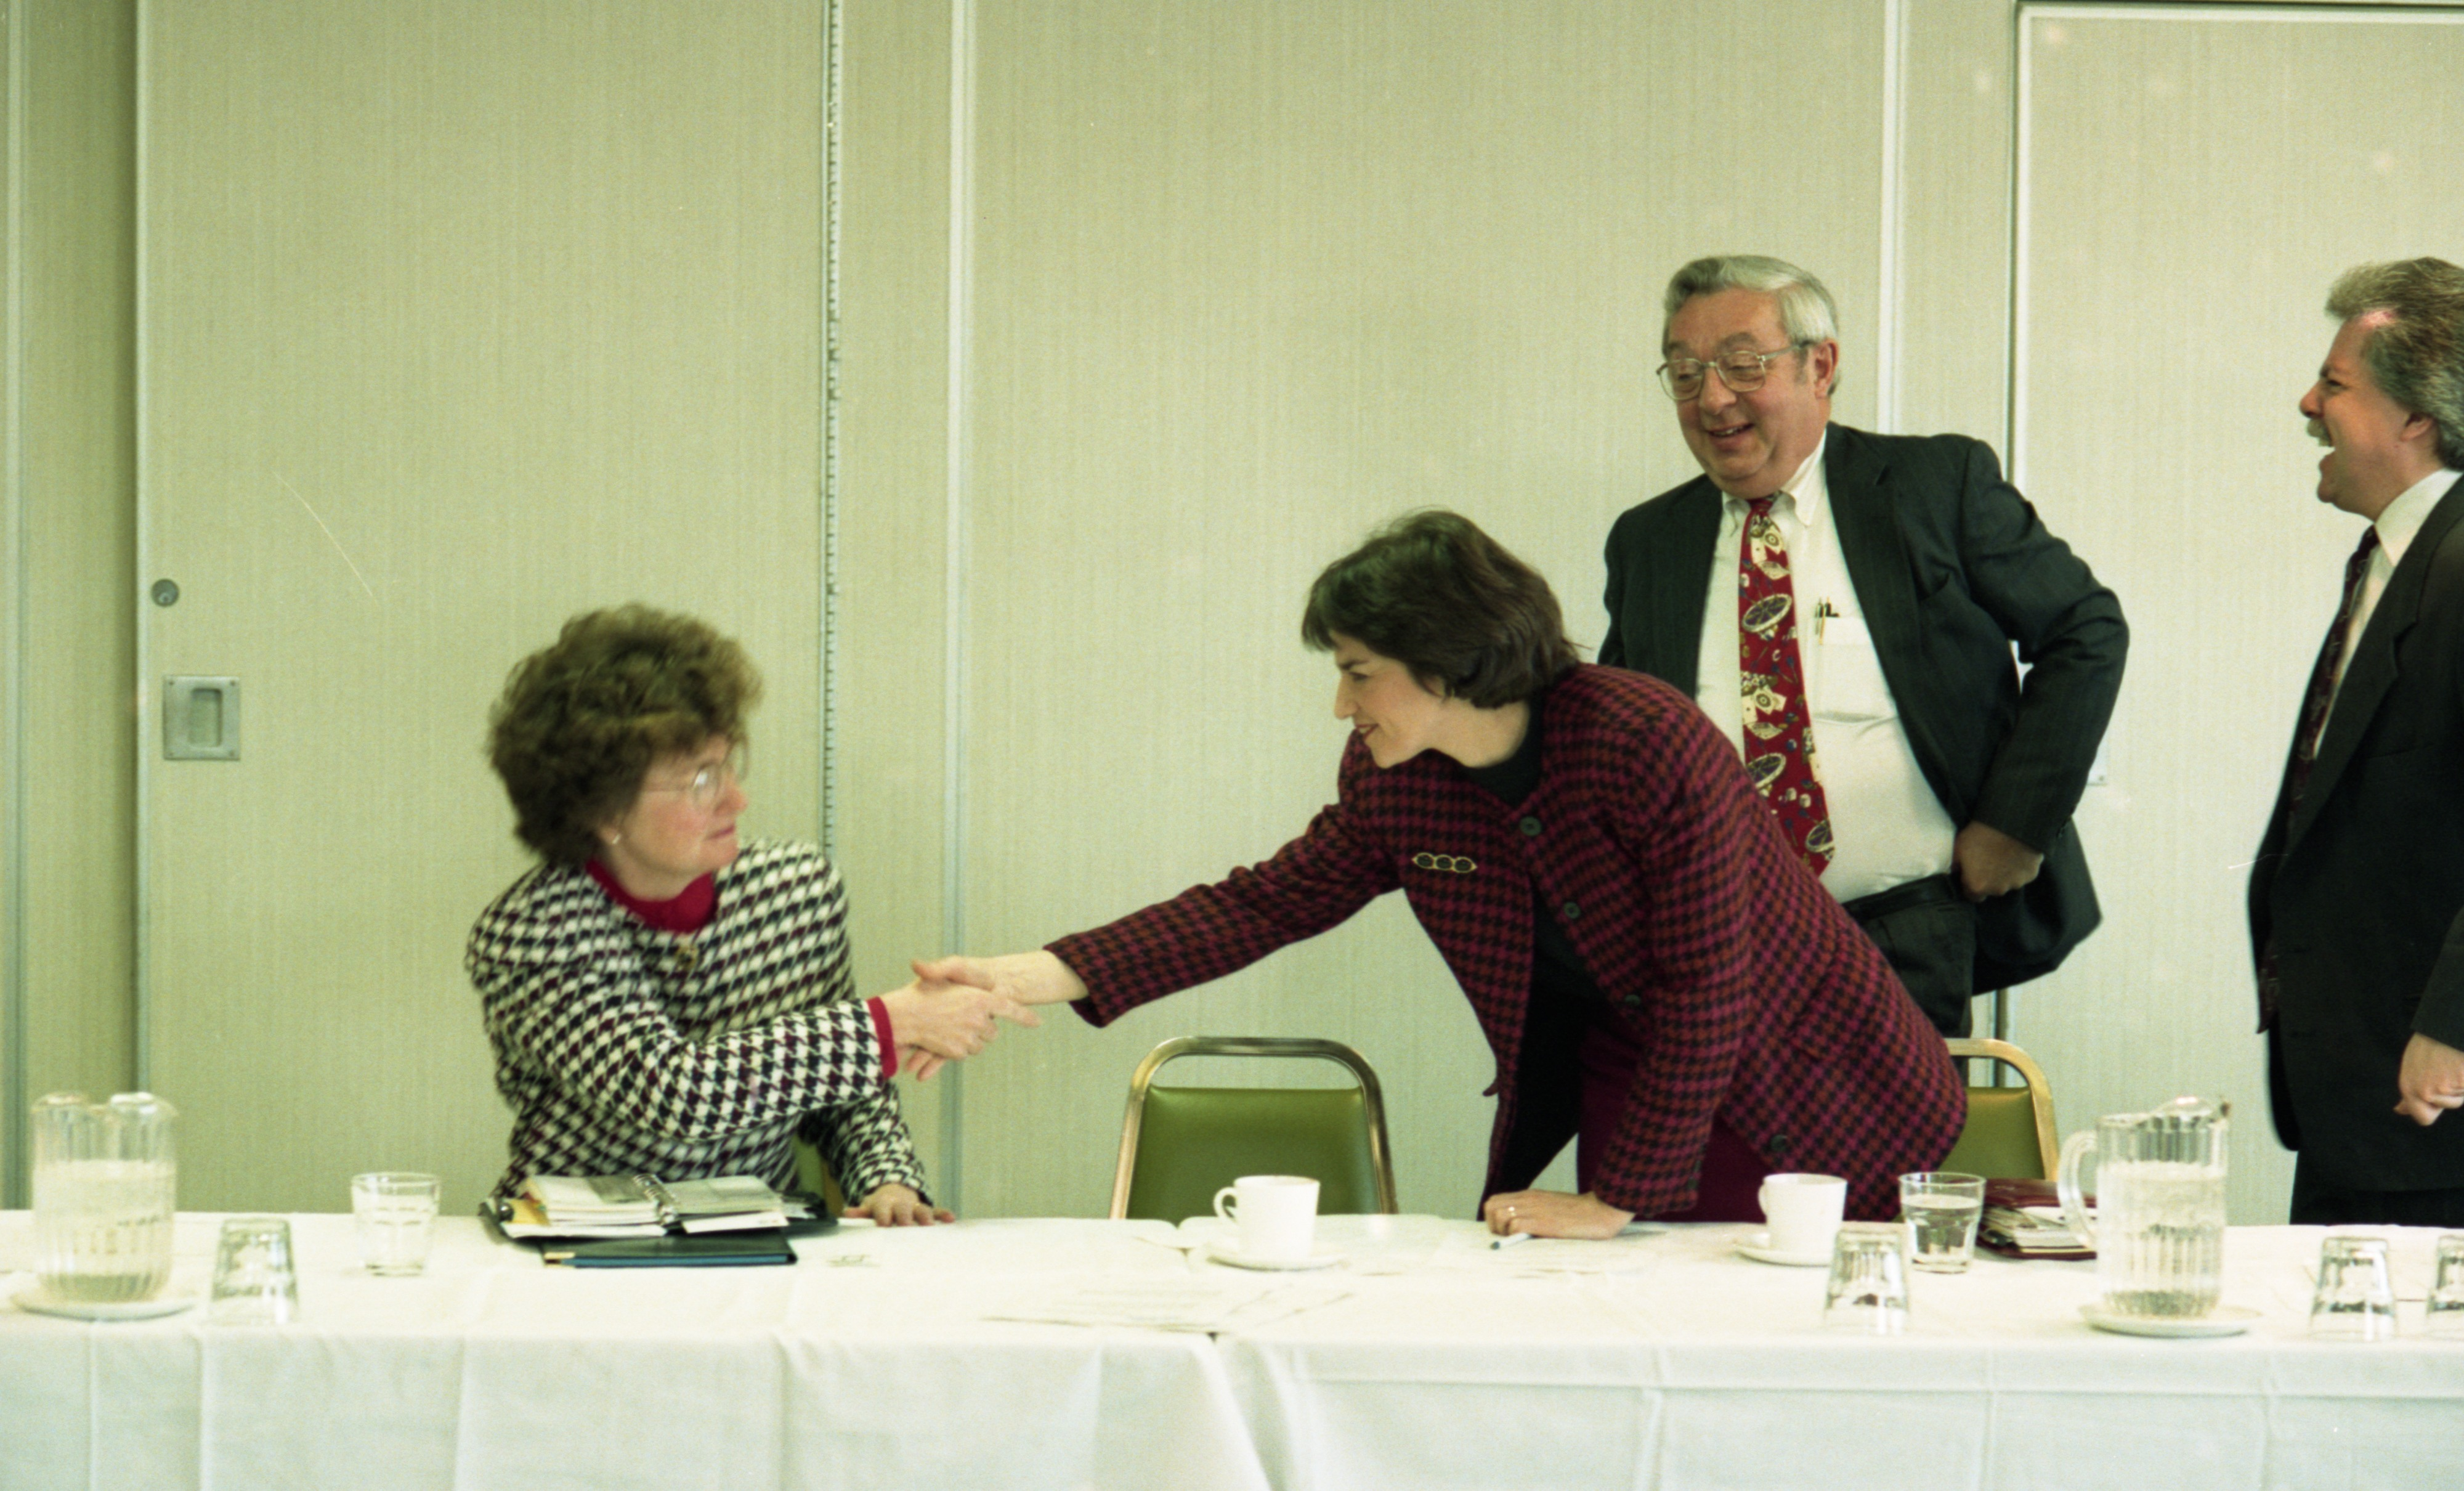 Ingrid Sheldon, Emily Salvette, and Liz Brater at First Mayoral Debate (Campus Inn), March 1993 image